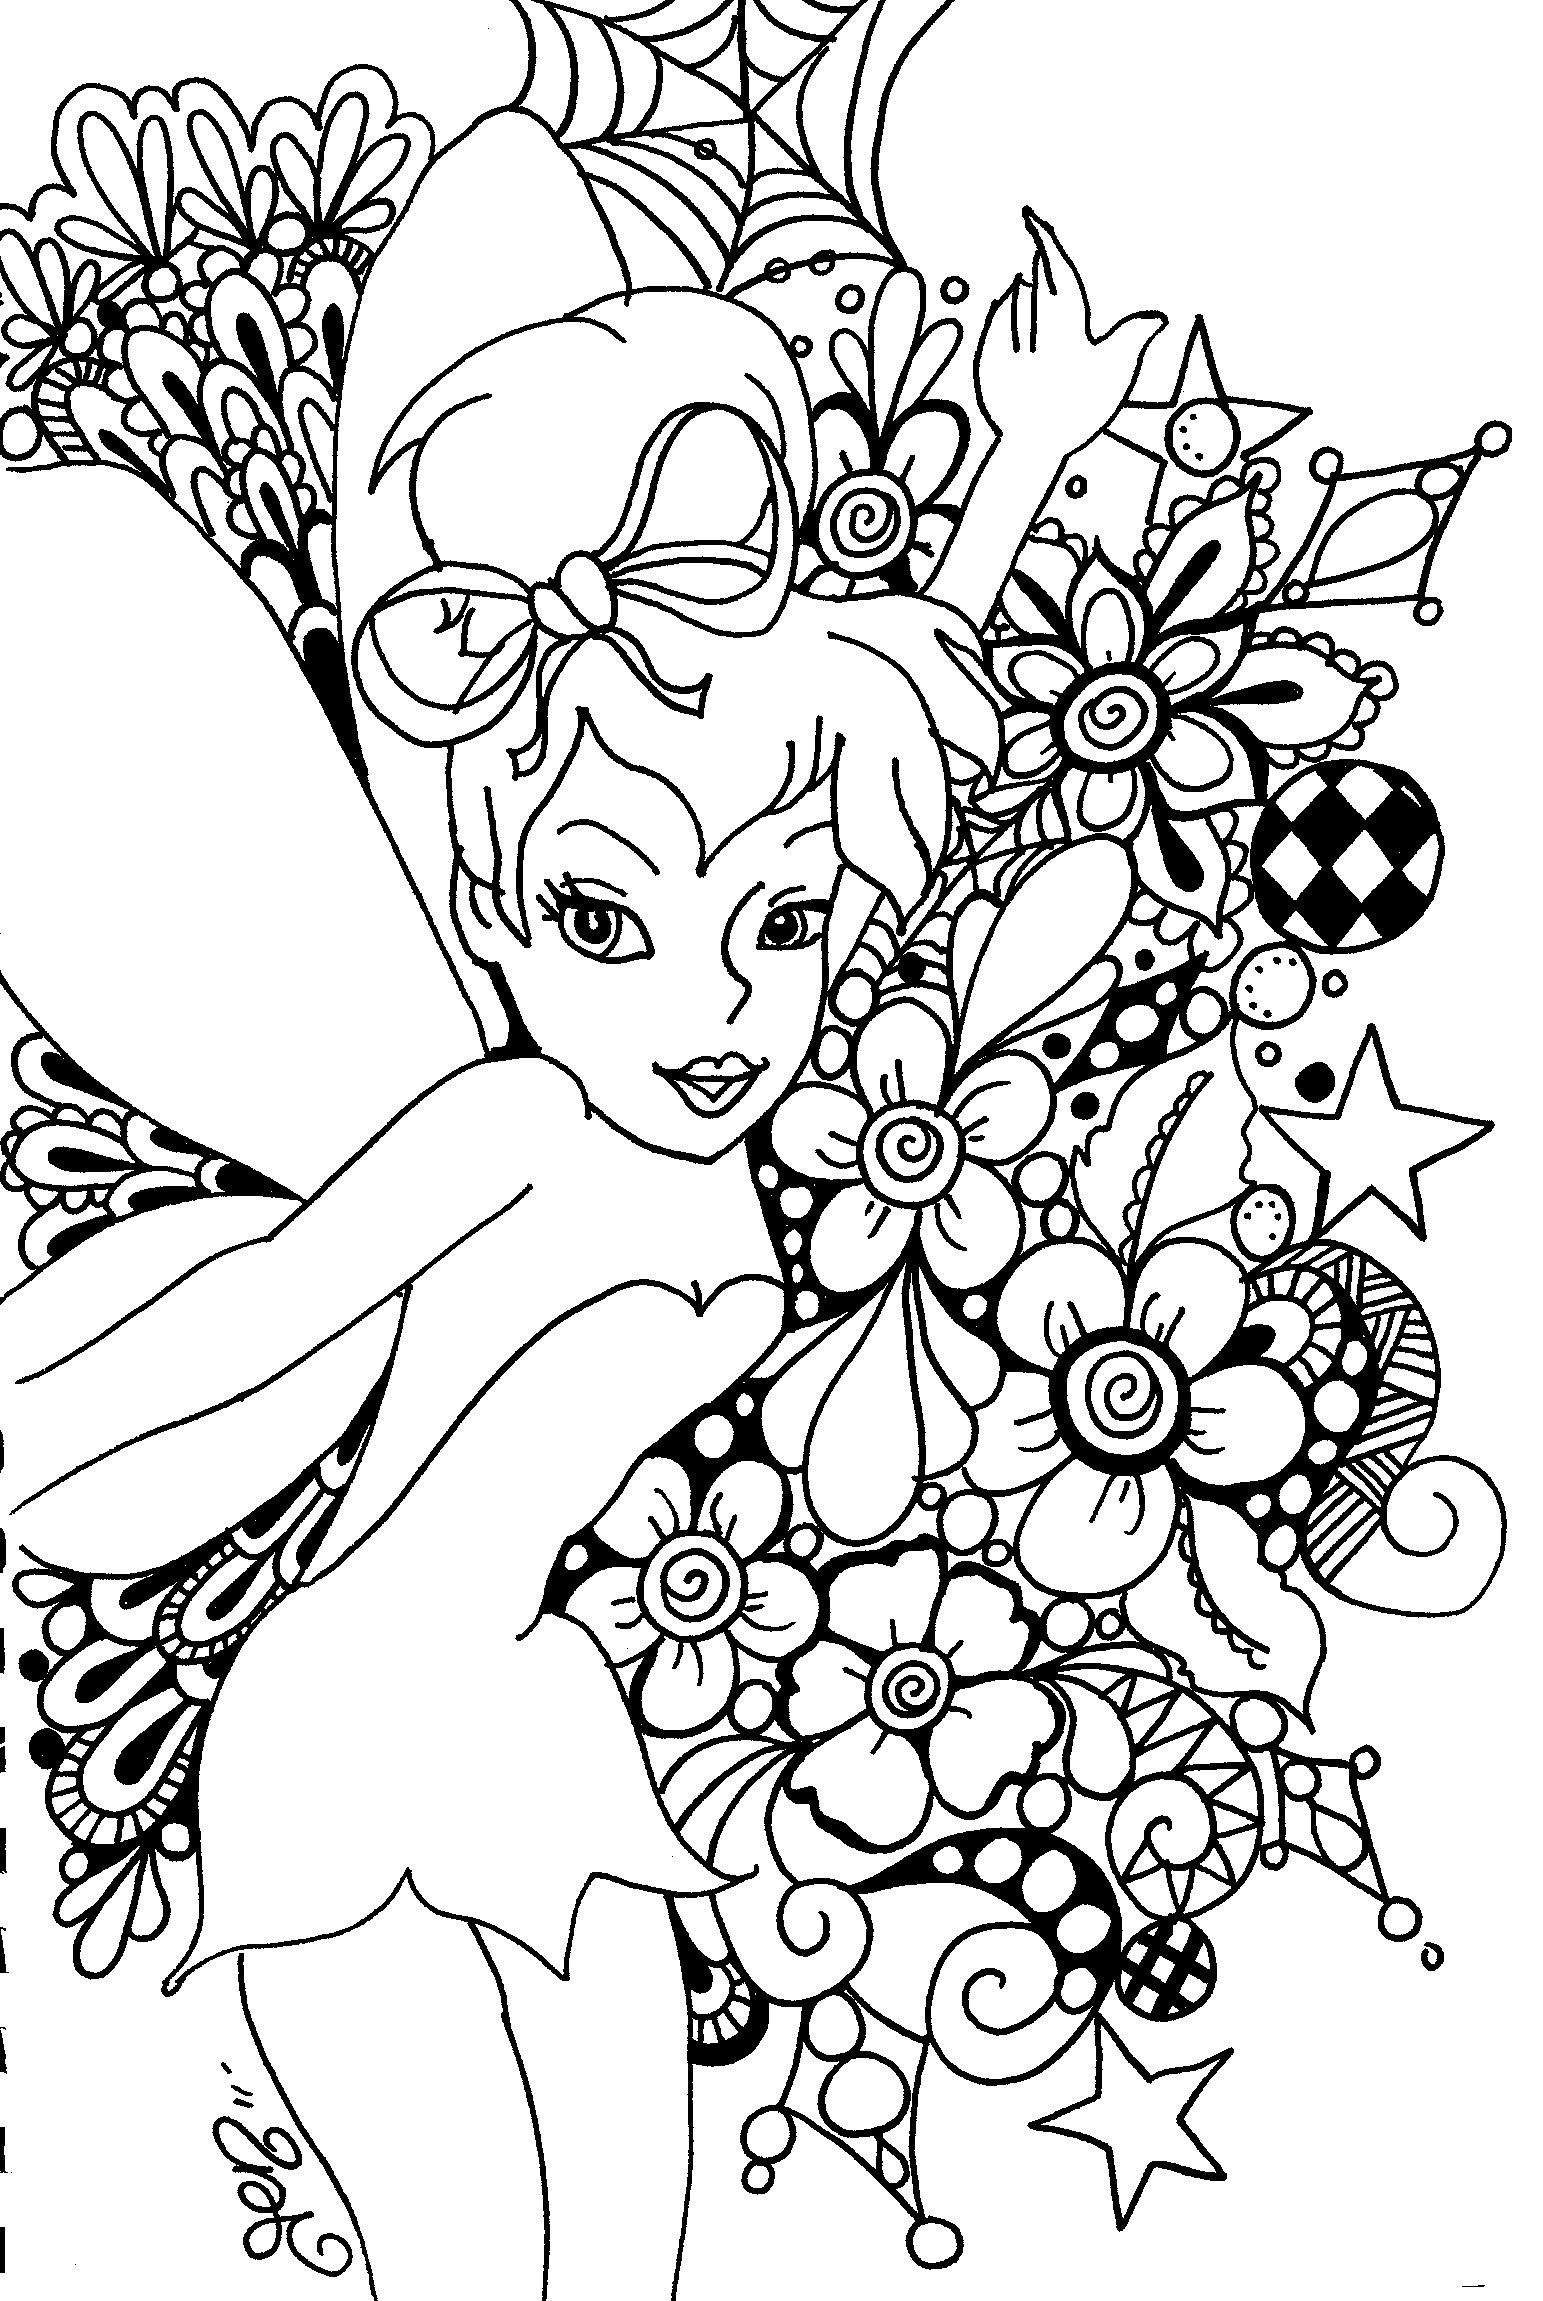 Free Coloring Pages Online Adults  Free Printable Tinkerbell Coloring Pages For Kids